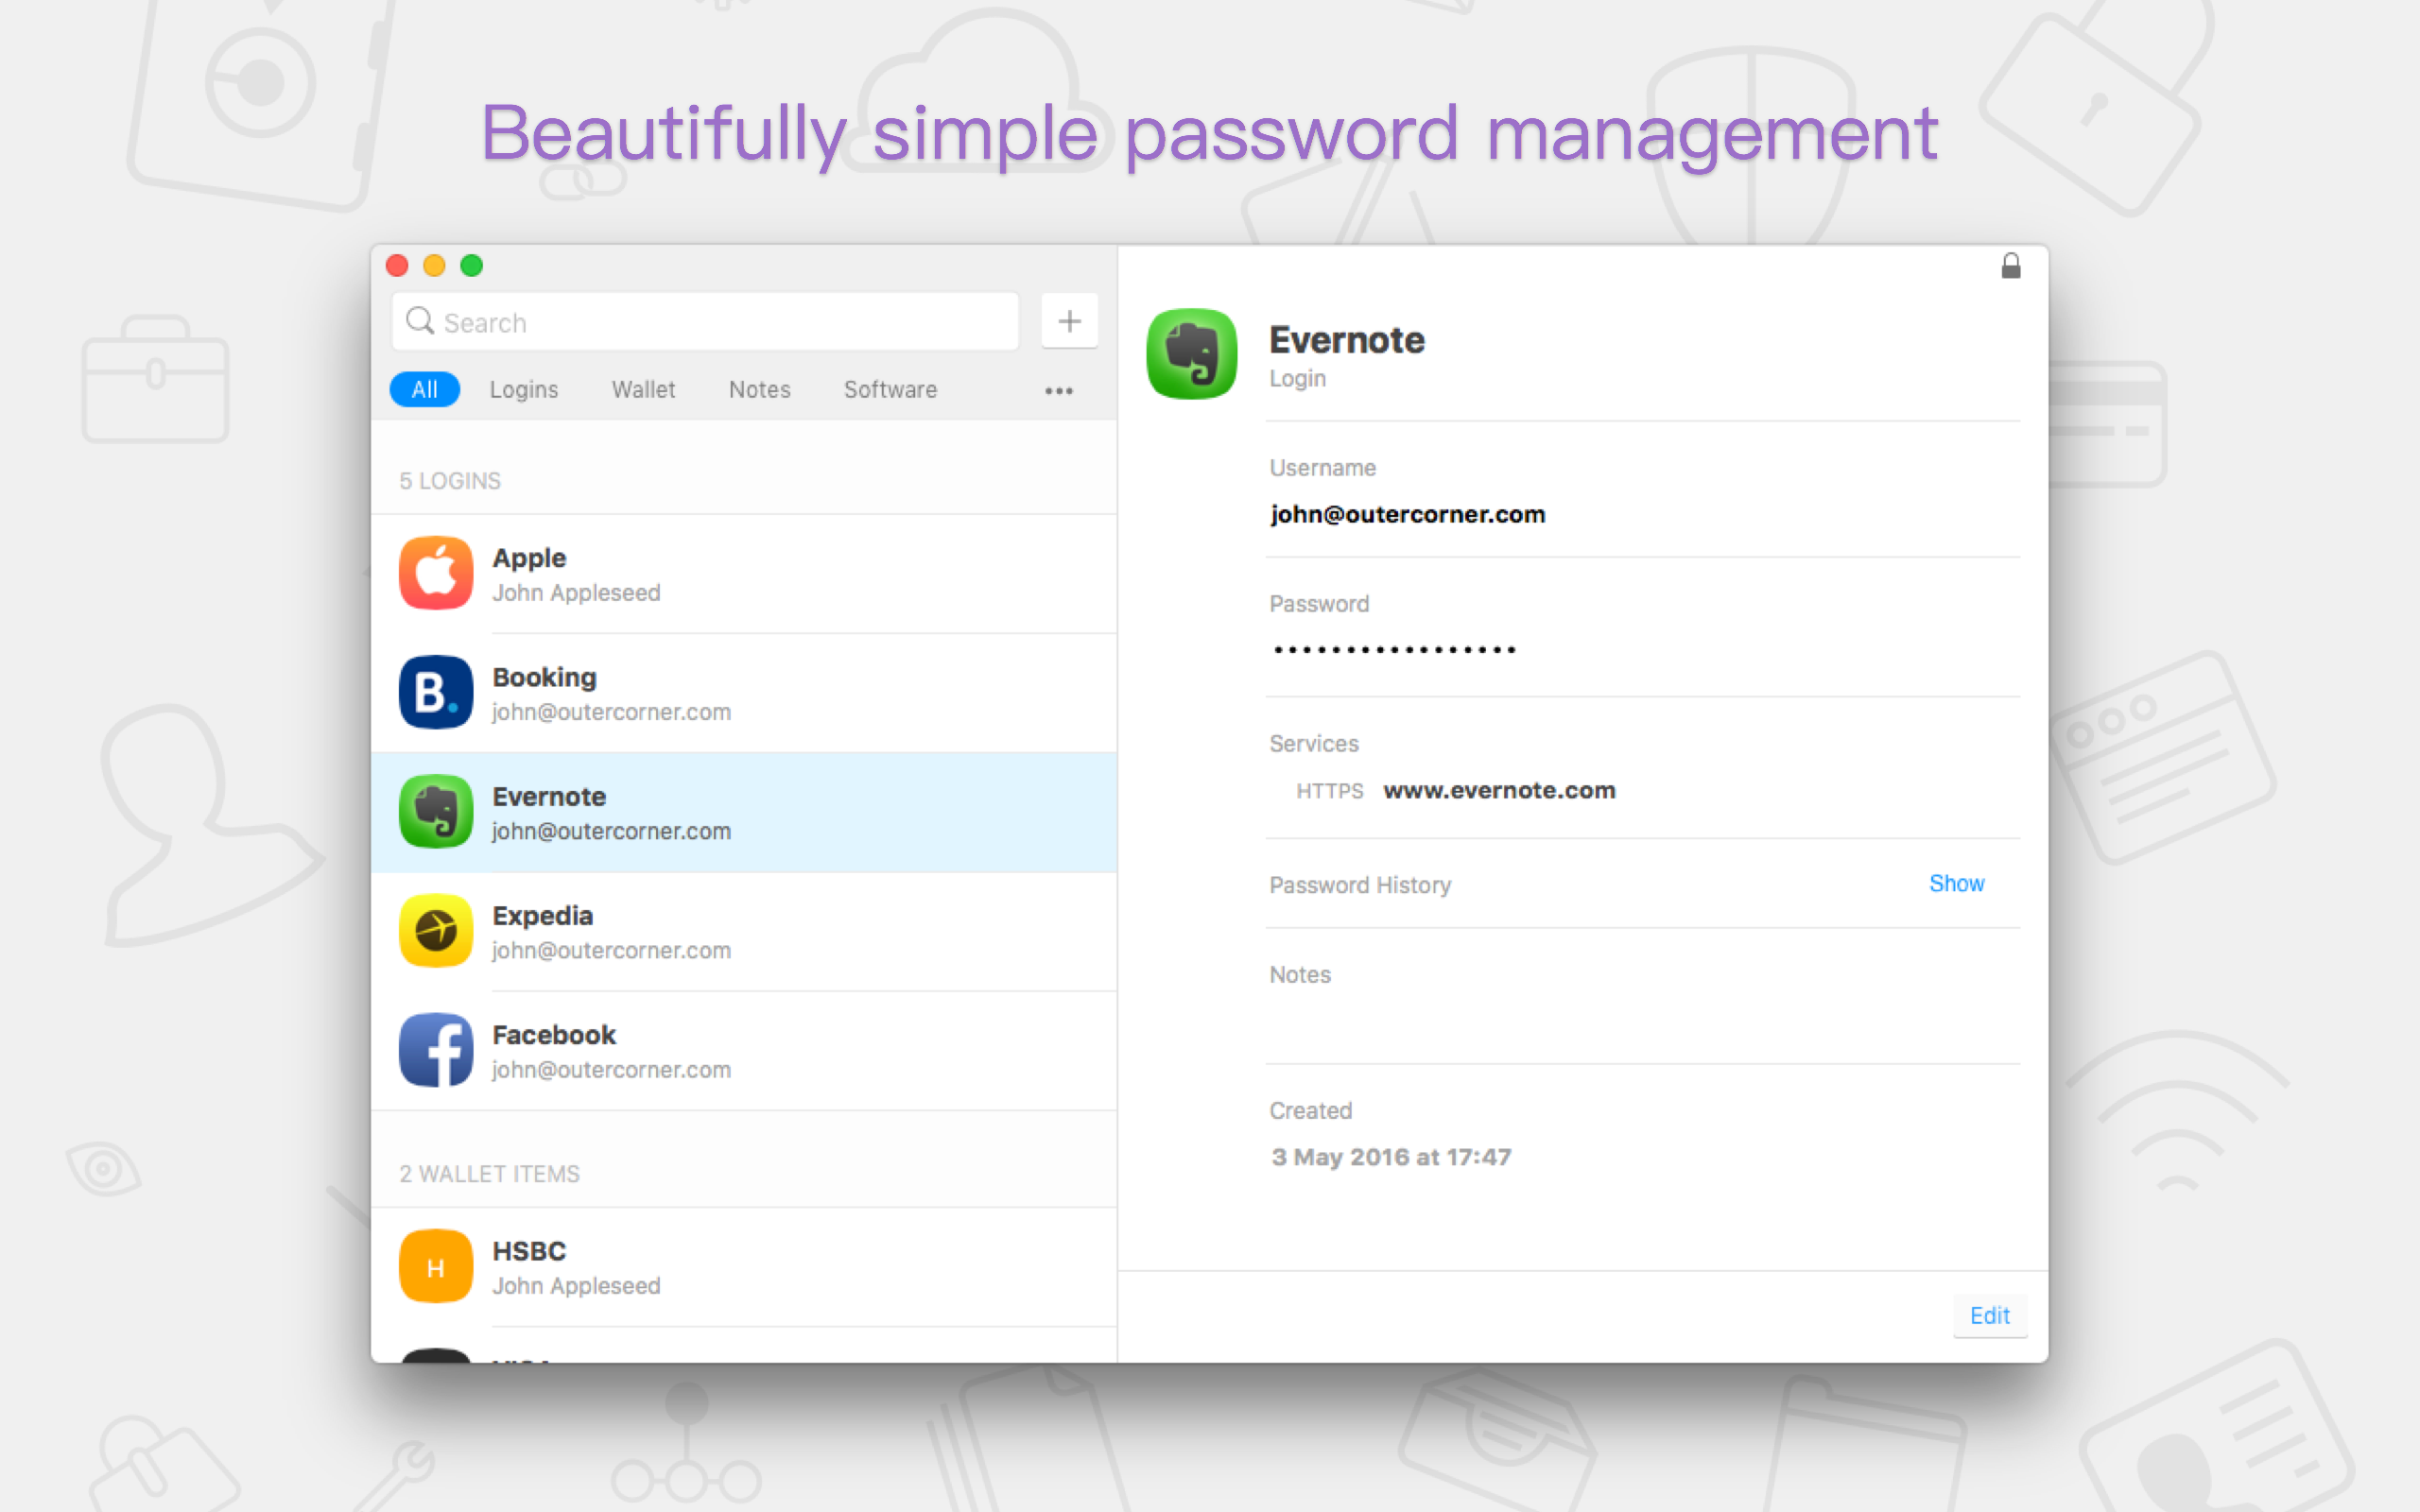 Beautifully simple password management